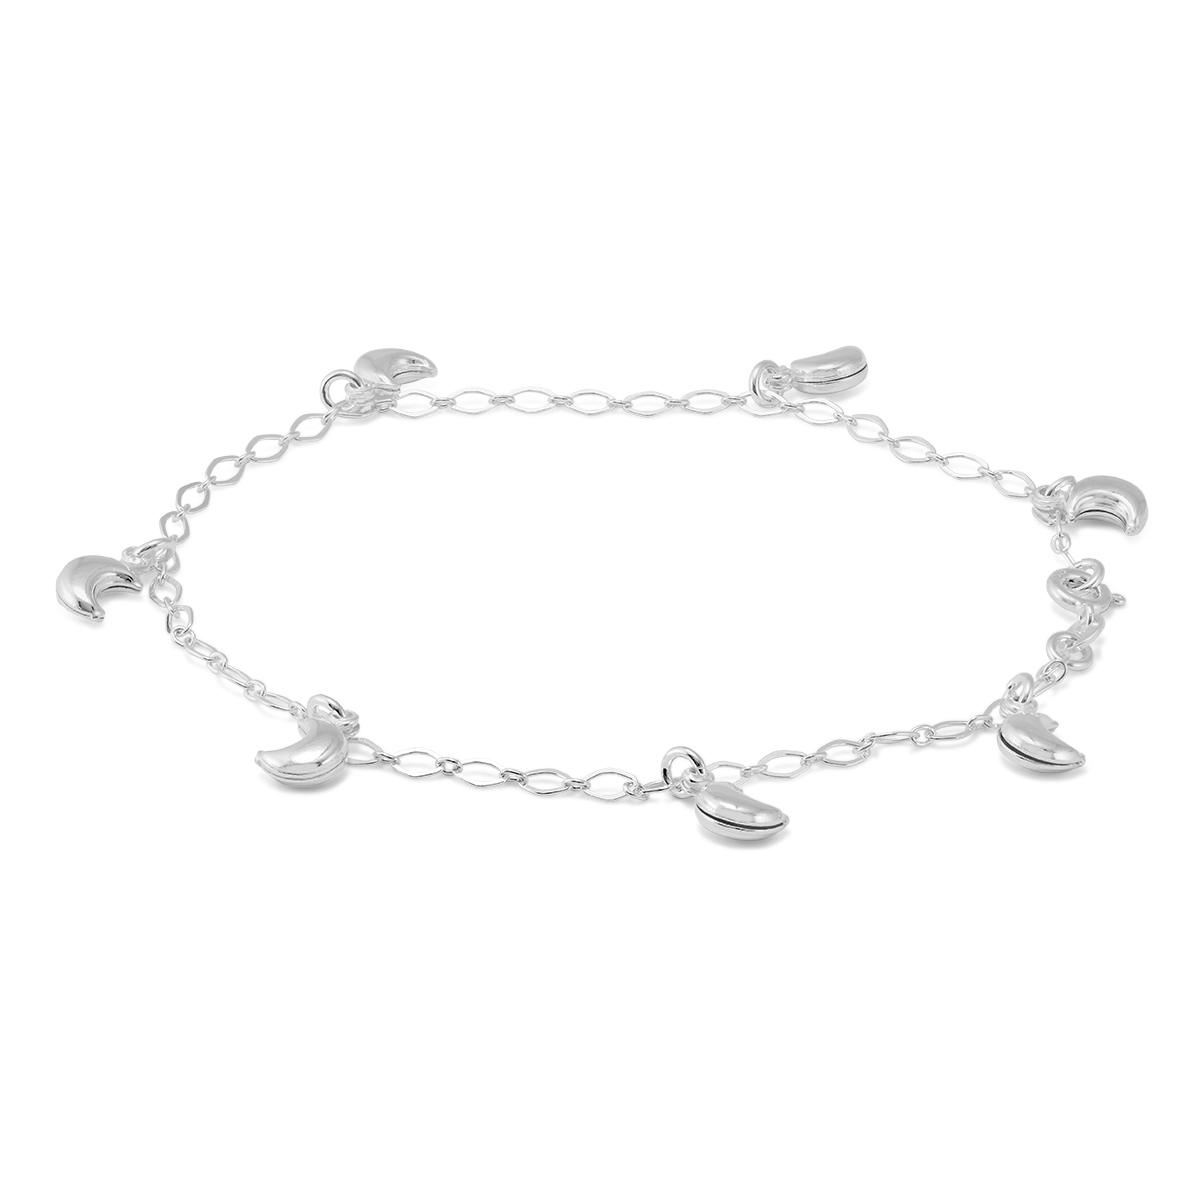 ECLIPSE SPECIAL – Moon Charm Anklet in .925 Sterling Silver